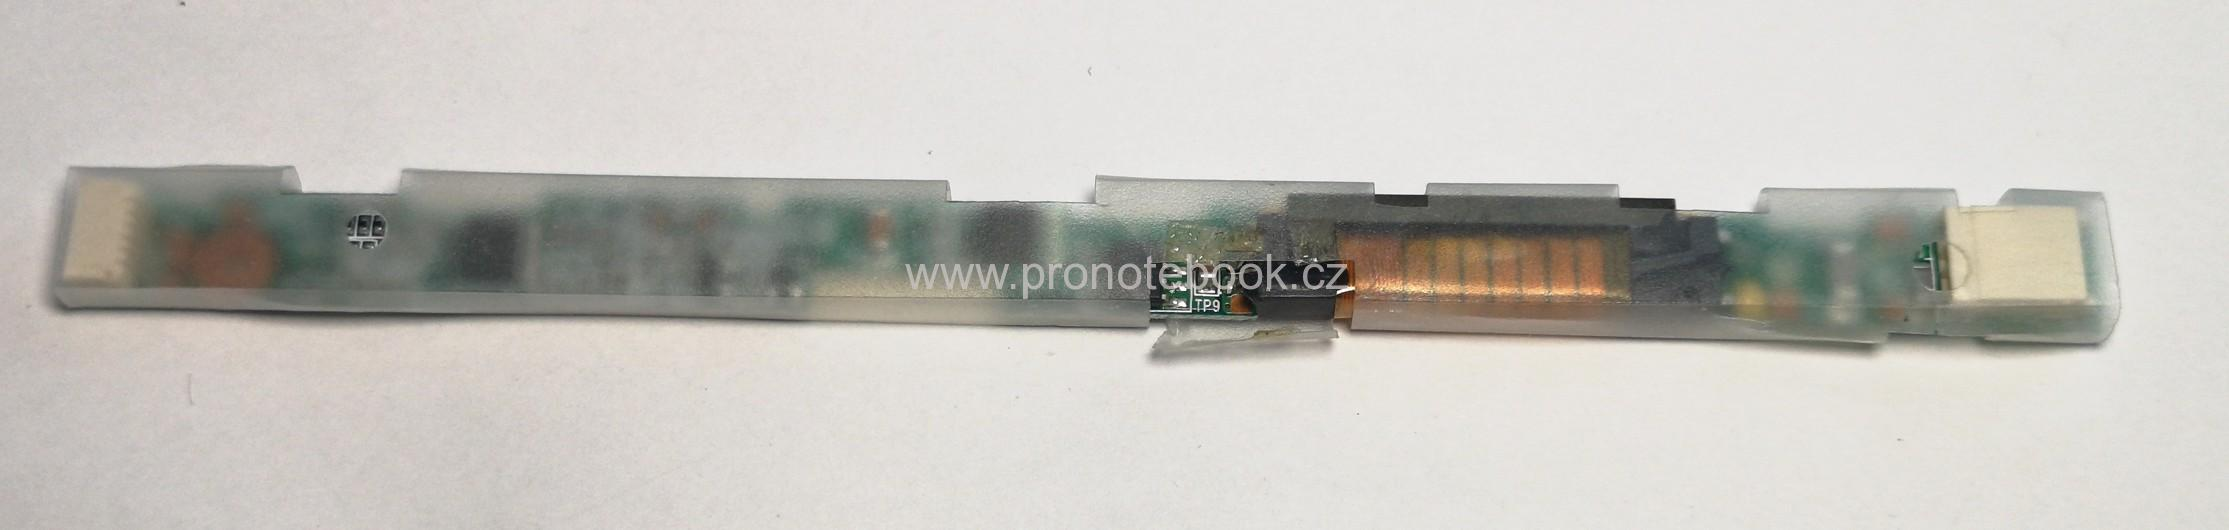 Advent Roma 2000 LCD Inverter Board 76G03401L-1A DA-1A08-UN01L 316817800001-R0E SKLADEM